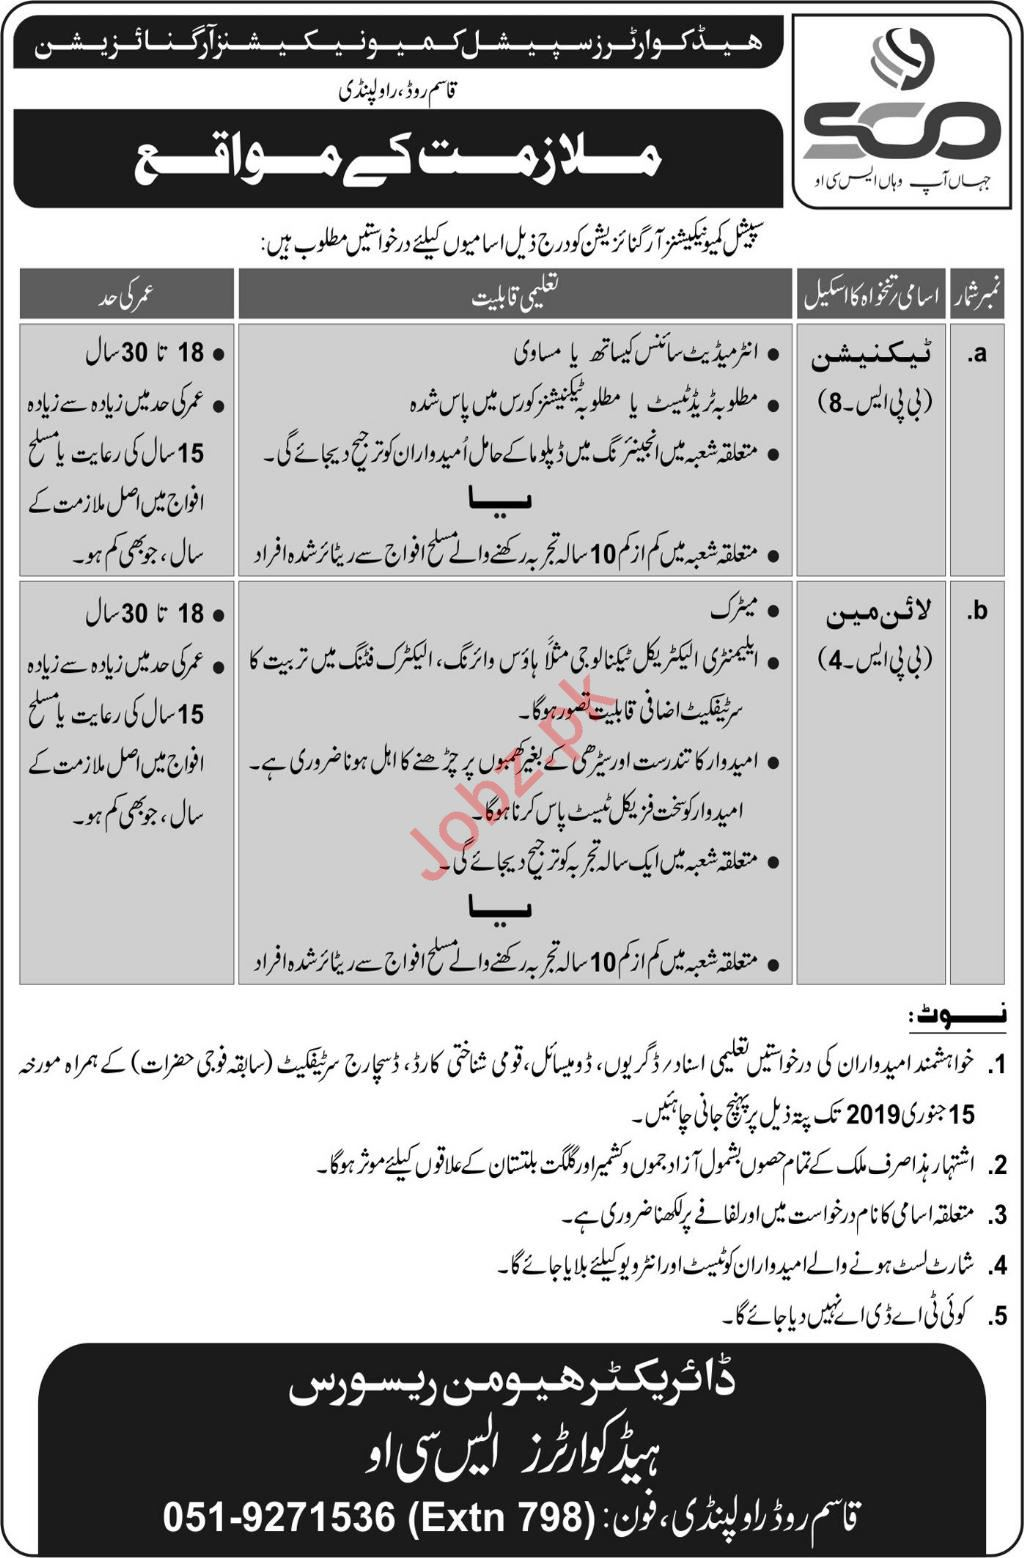 Special Communication Organization SCO Rawalpindi Jobs 2019